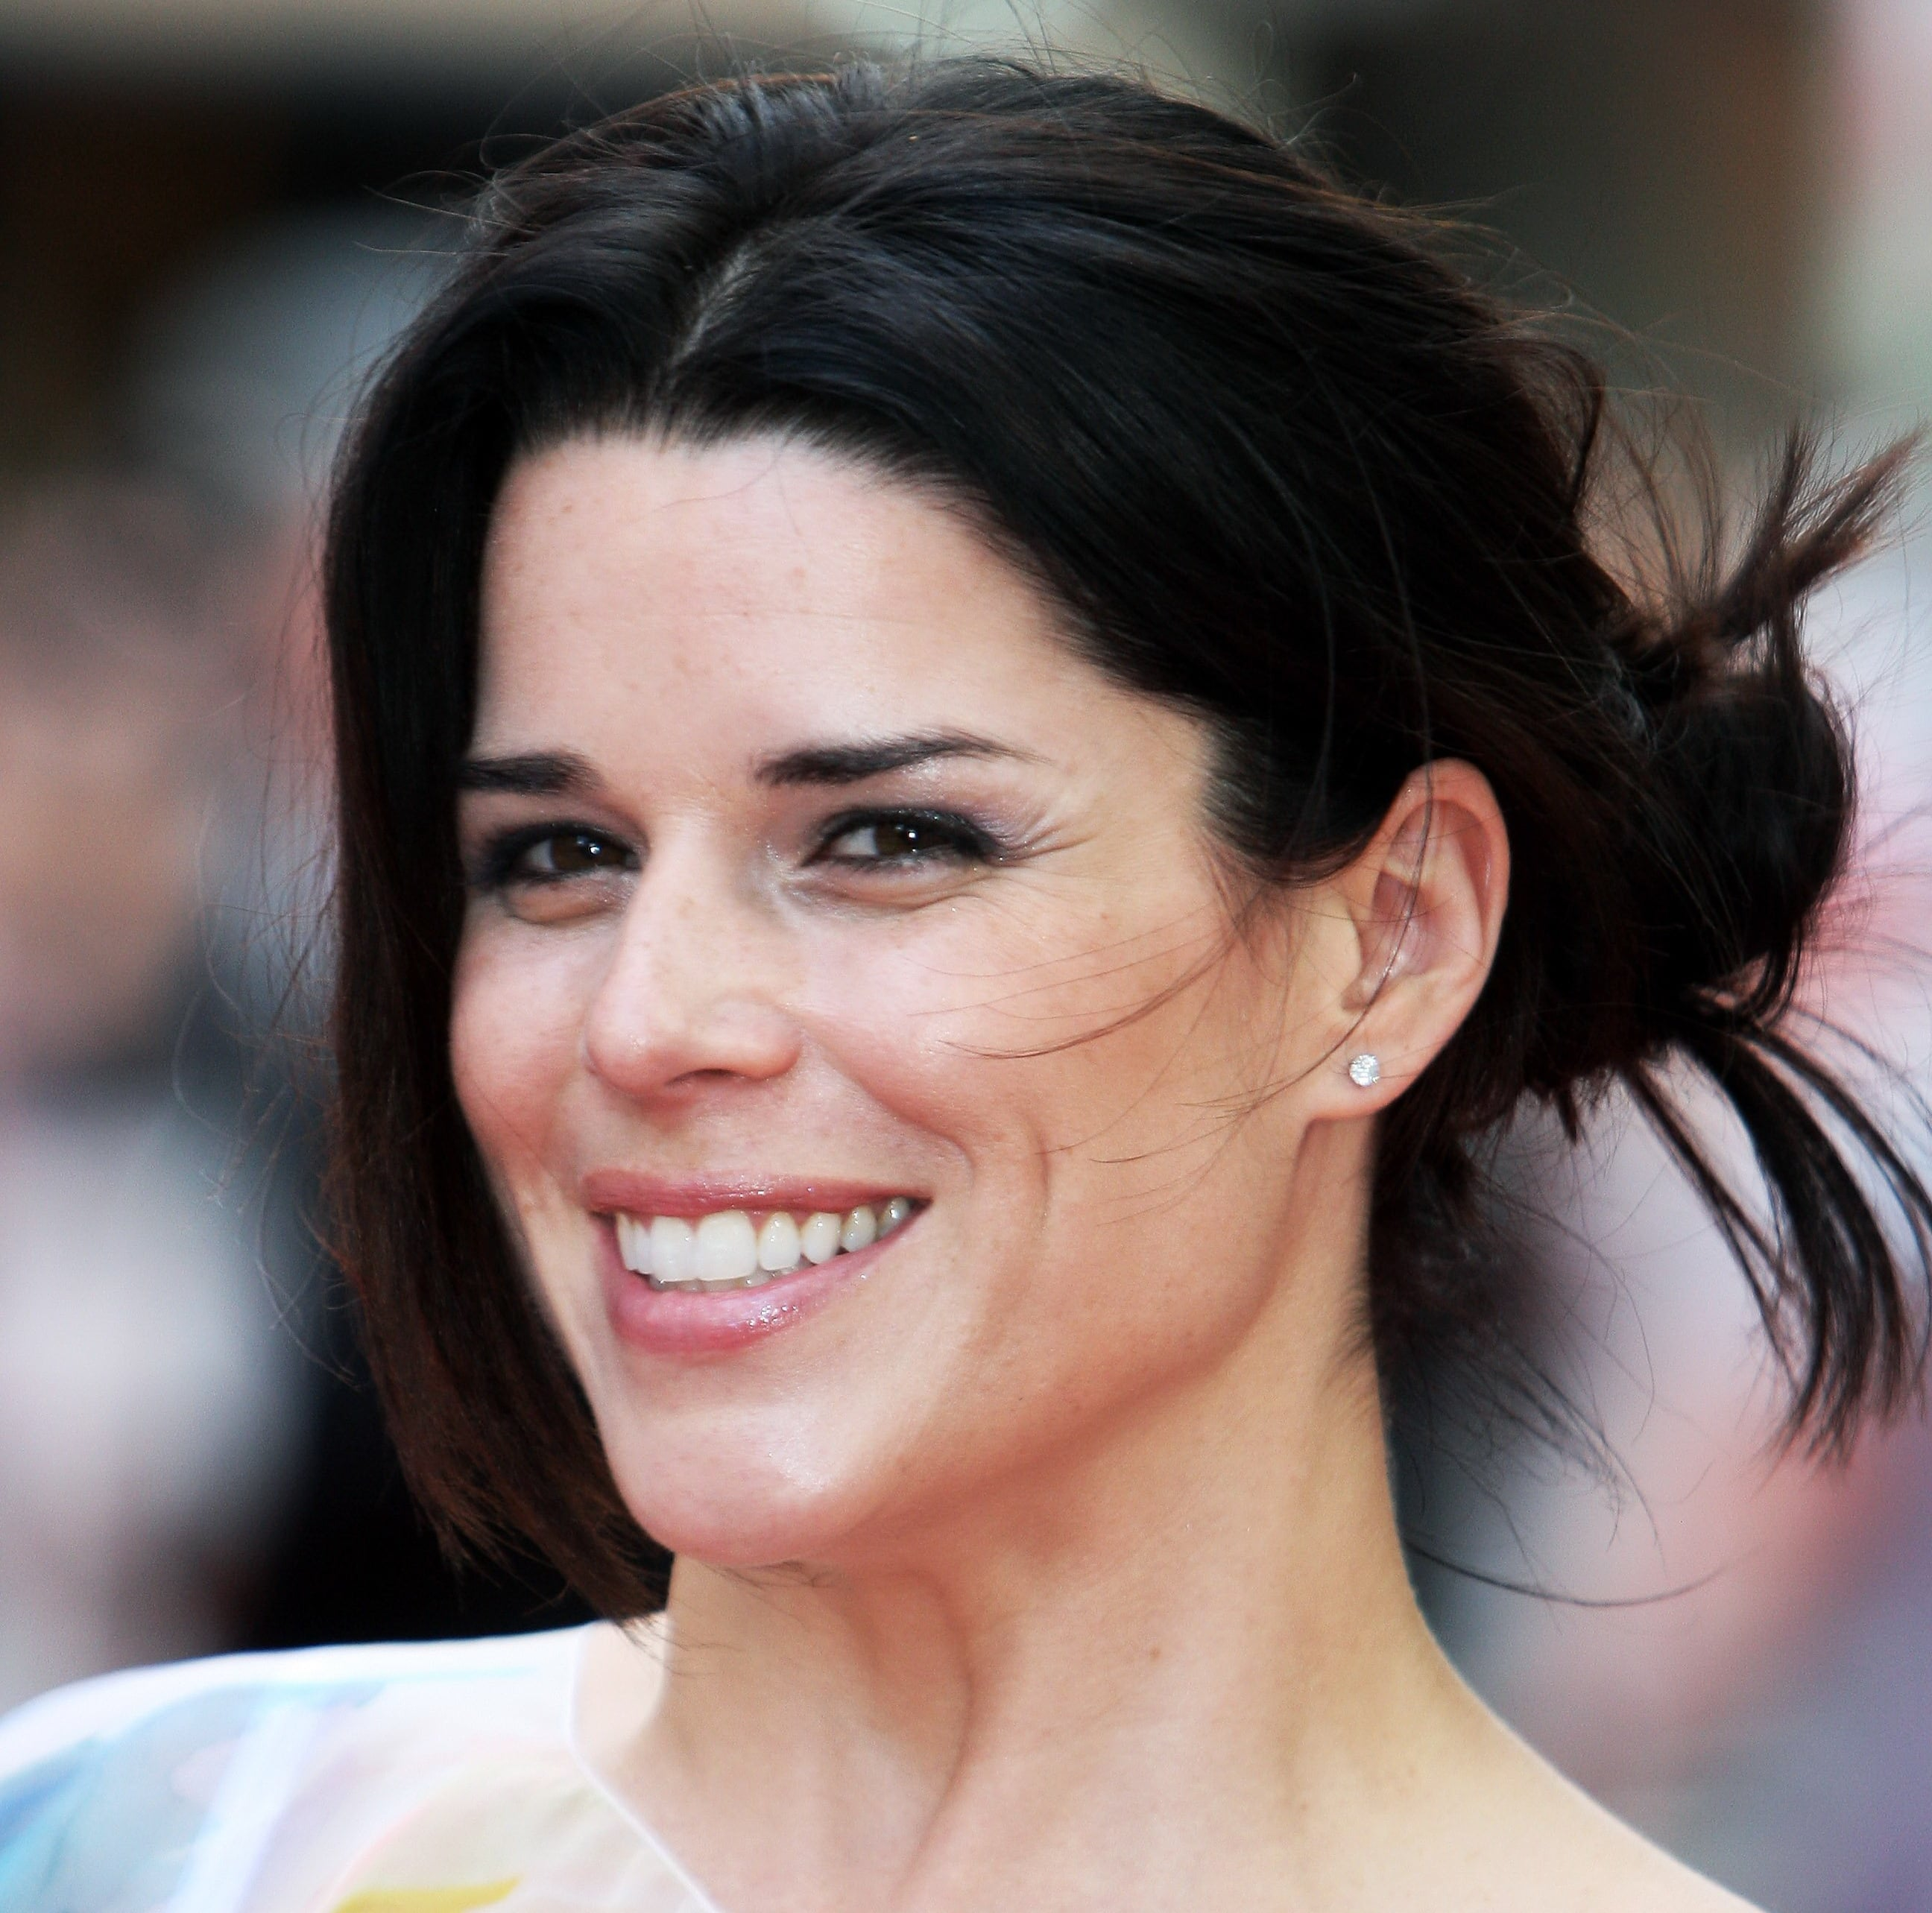 shack house neve campbell  woman crush  wednesday wcw